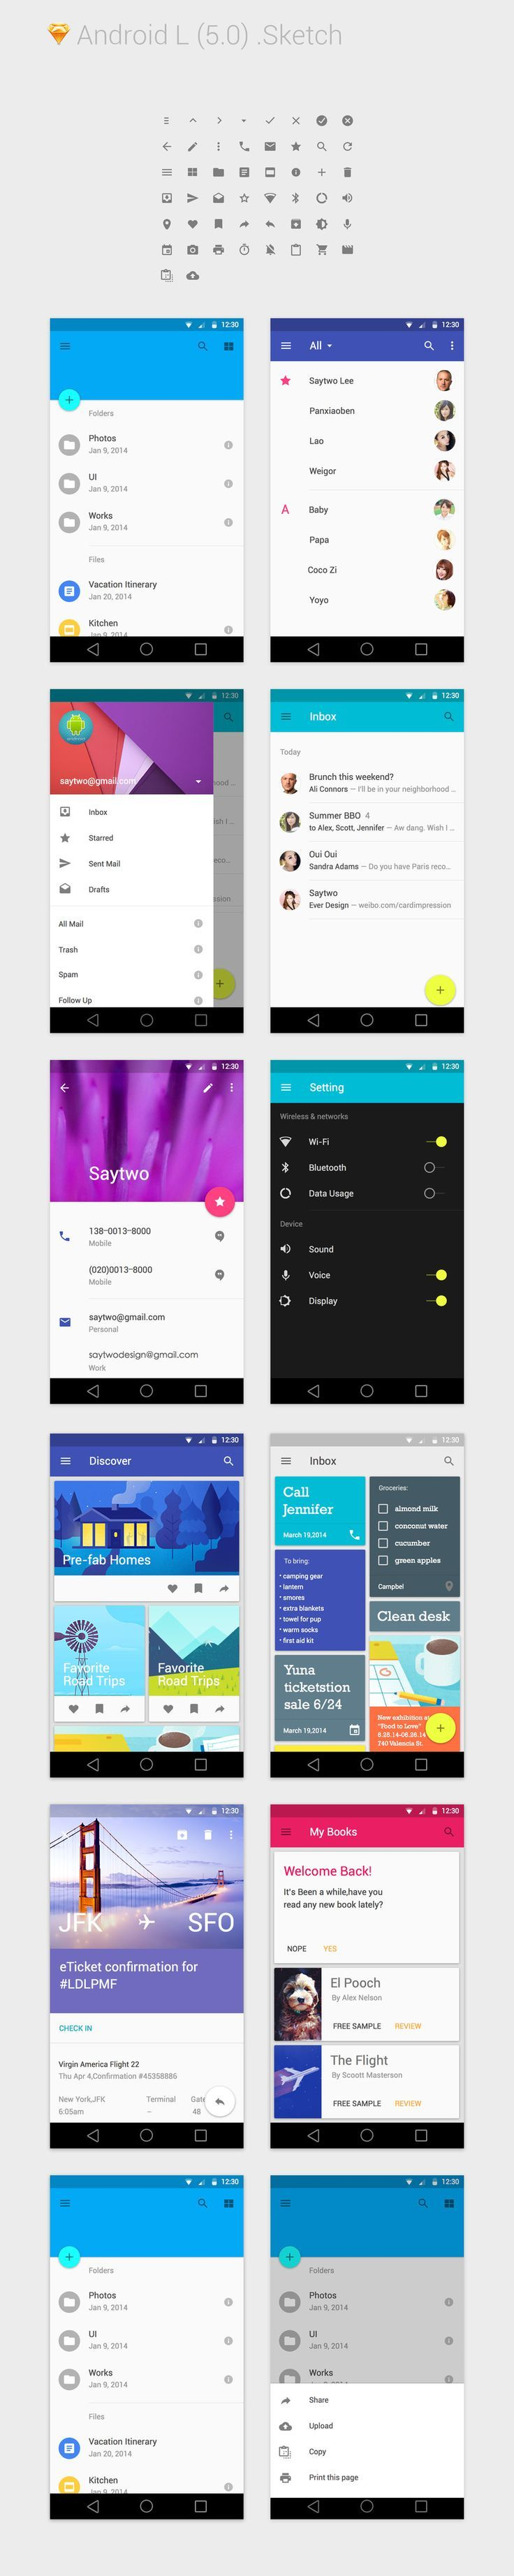 Android L for Sketch 3 | Sketch App | Pinterest